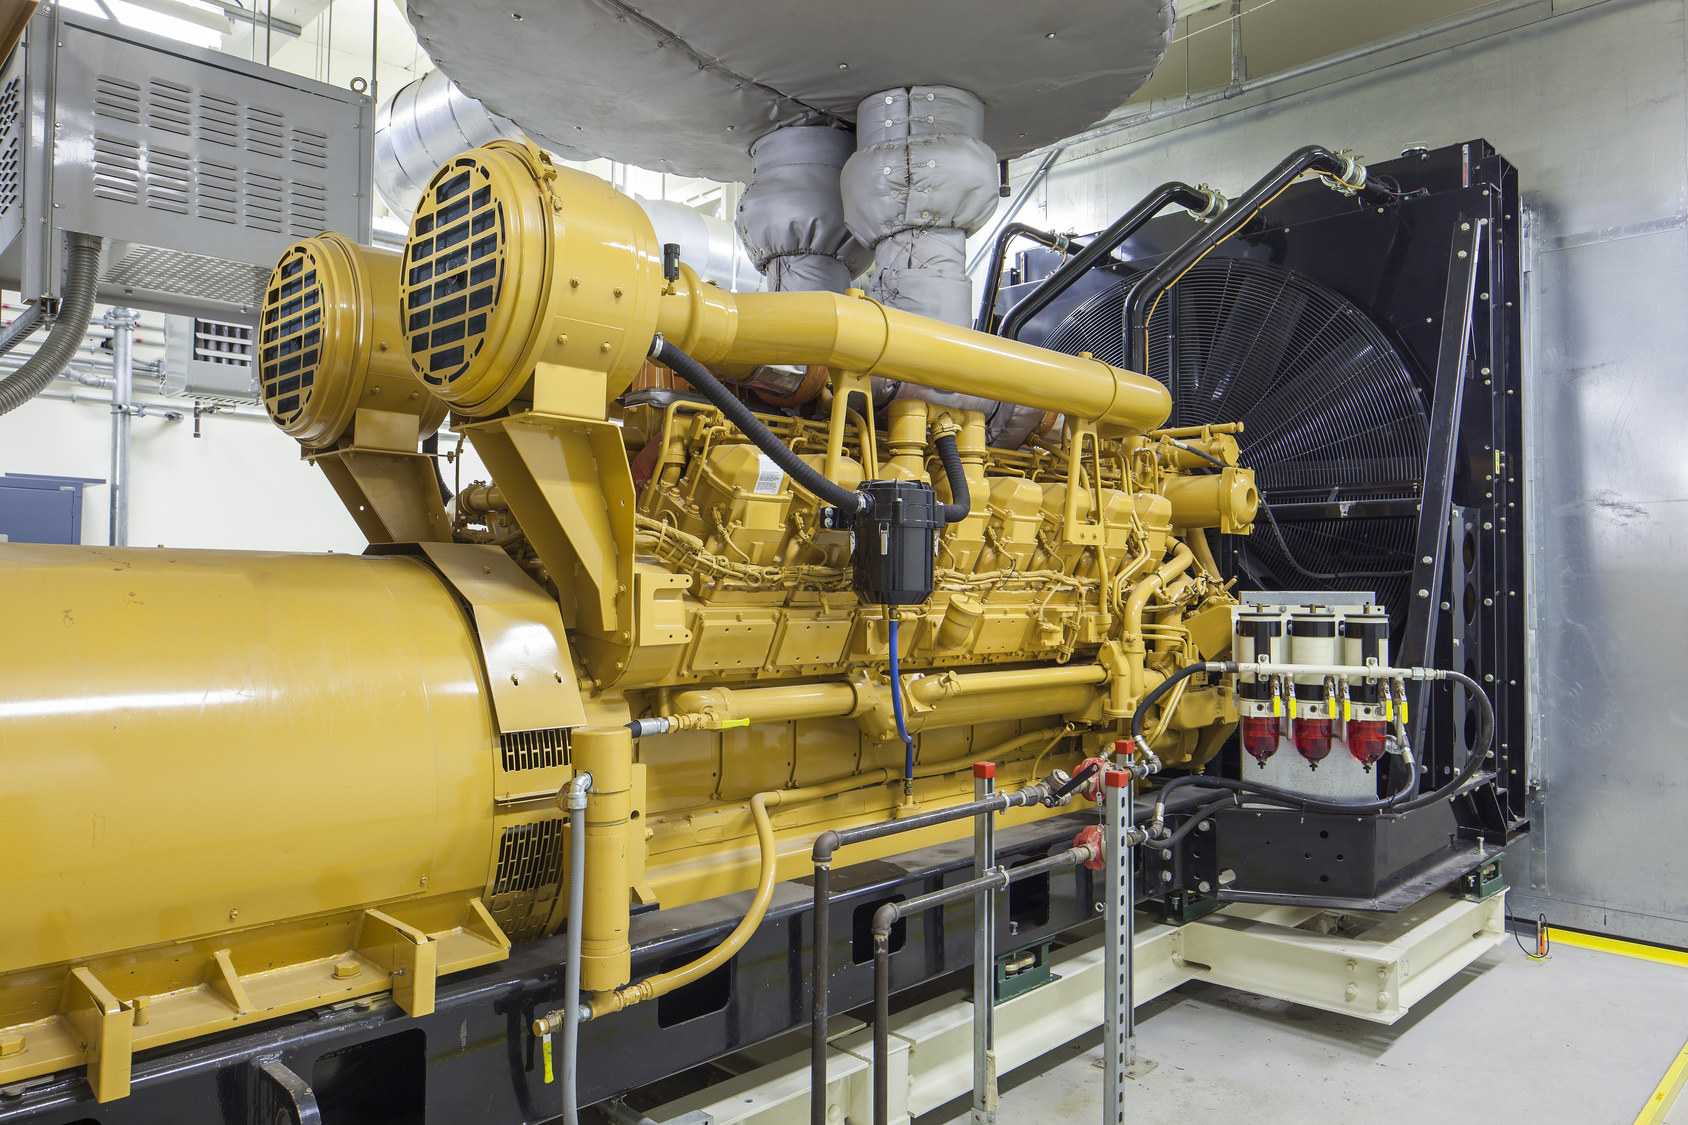 An industrial backup generator